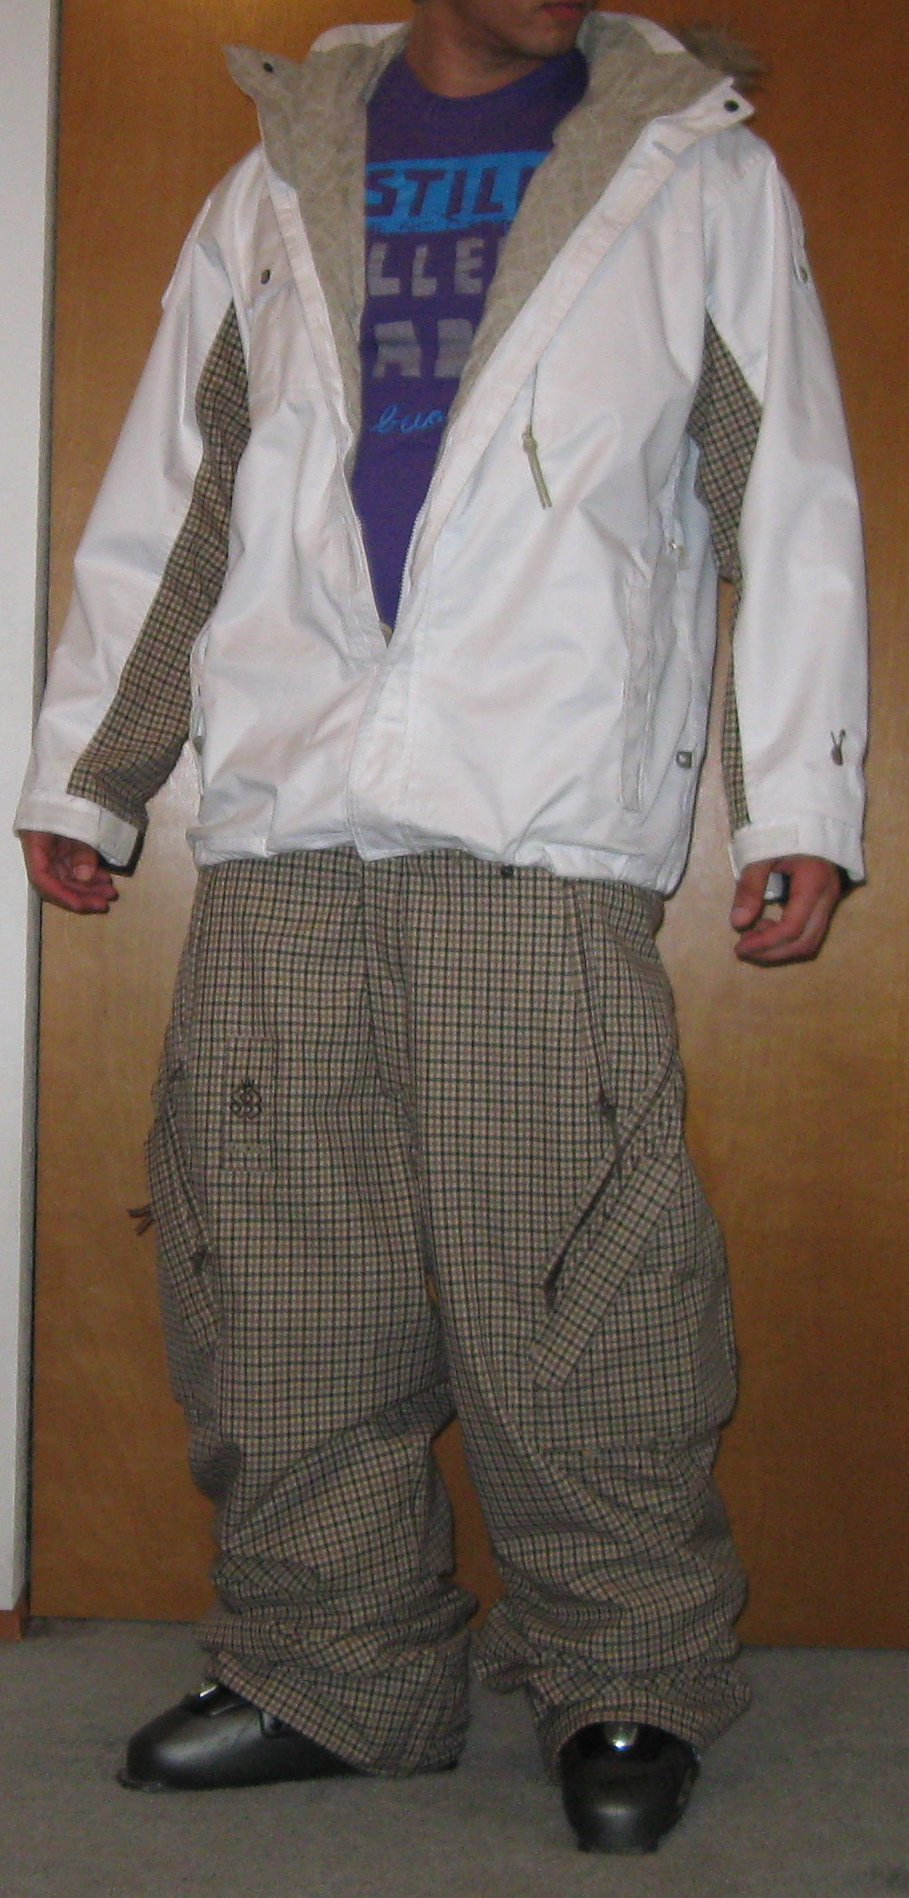 Special Blend XL Control Jacket and Annex pant XXL for sale